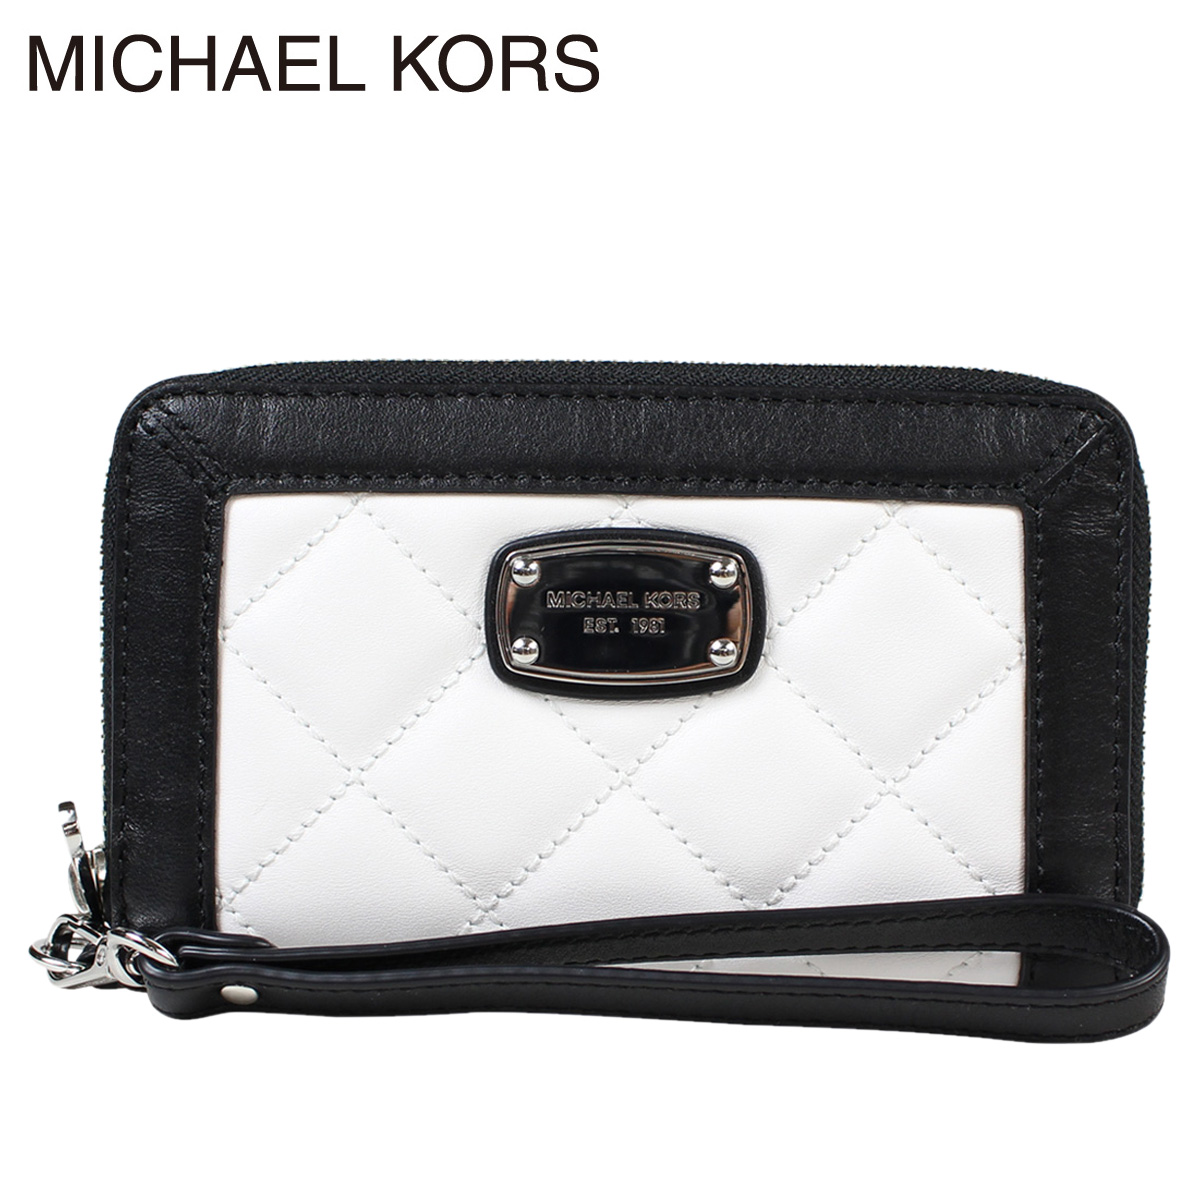 MICHAEL KORS Michael Kors purse wallet 35T6SHQZ7T optic White x black ladies